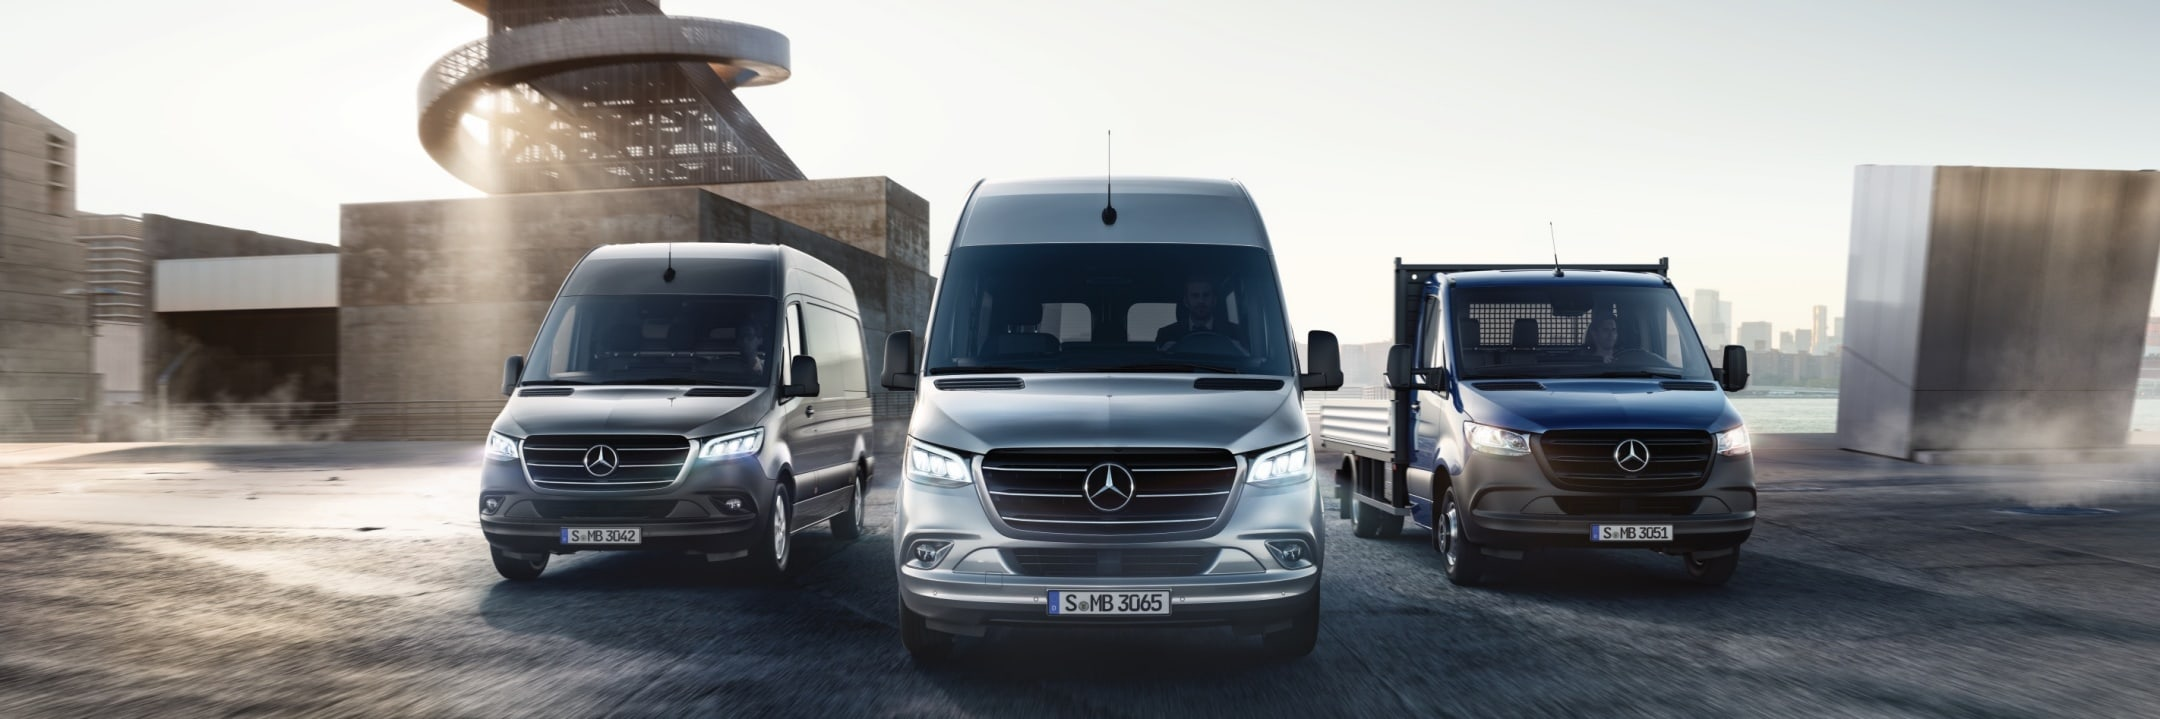 Mercedes-Benz Vans model overview